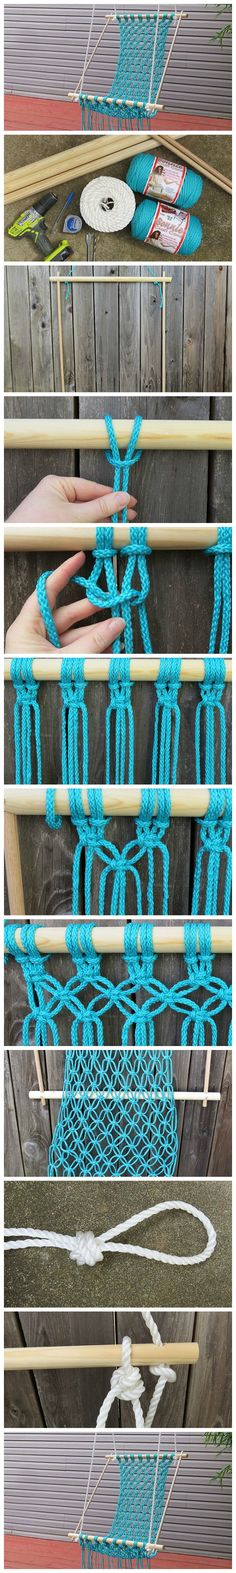 Behov for særligt garn? How To Make A Lovely DIY Macrame Hammock Fun Crafts, Diy And Crafts, Macrame Hanging Chair, Macrame Chairs, Hanging Chairs, Hanging Beds, Craft Projects, Projects To Try, Craft Ideas